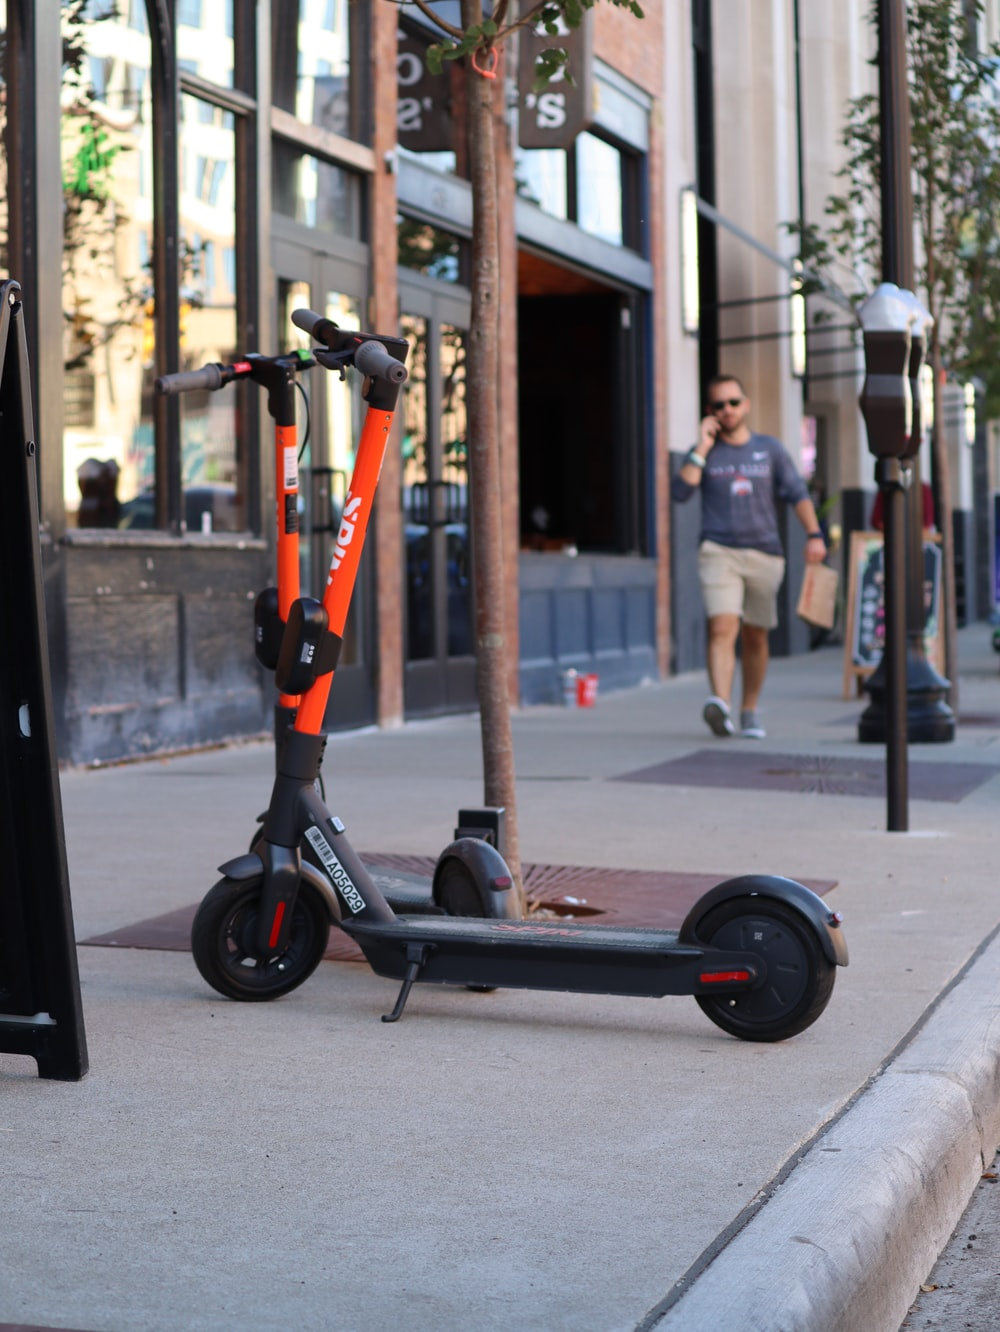 scooter near building